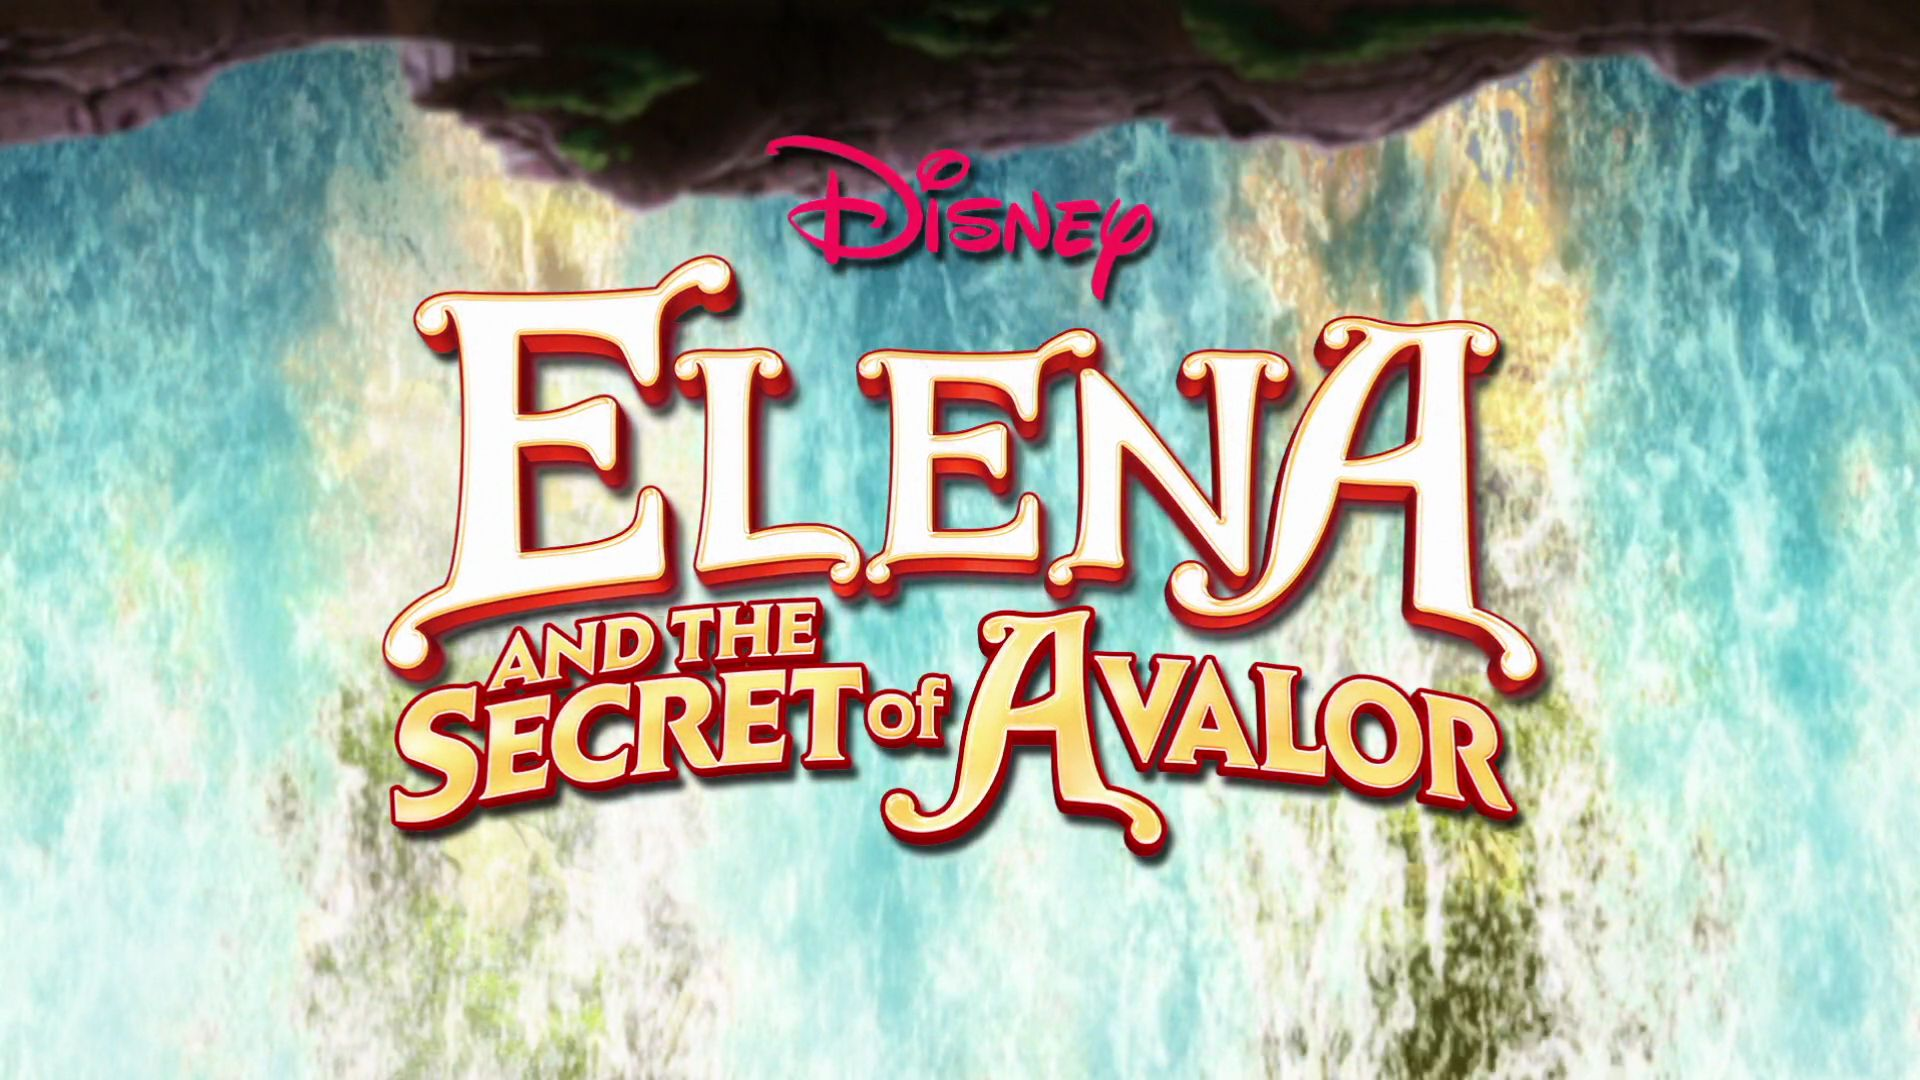 Elena and the secret of avalor disney wiki fandom powered by wikia elena and the secret of avalor biocorpaavc Images